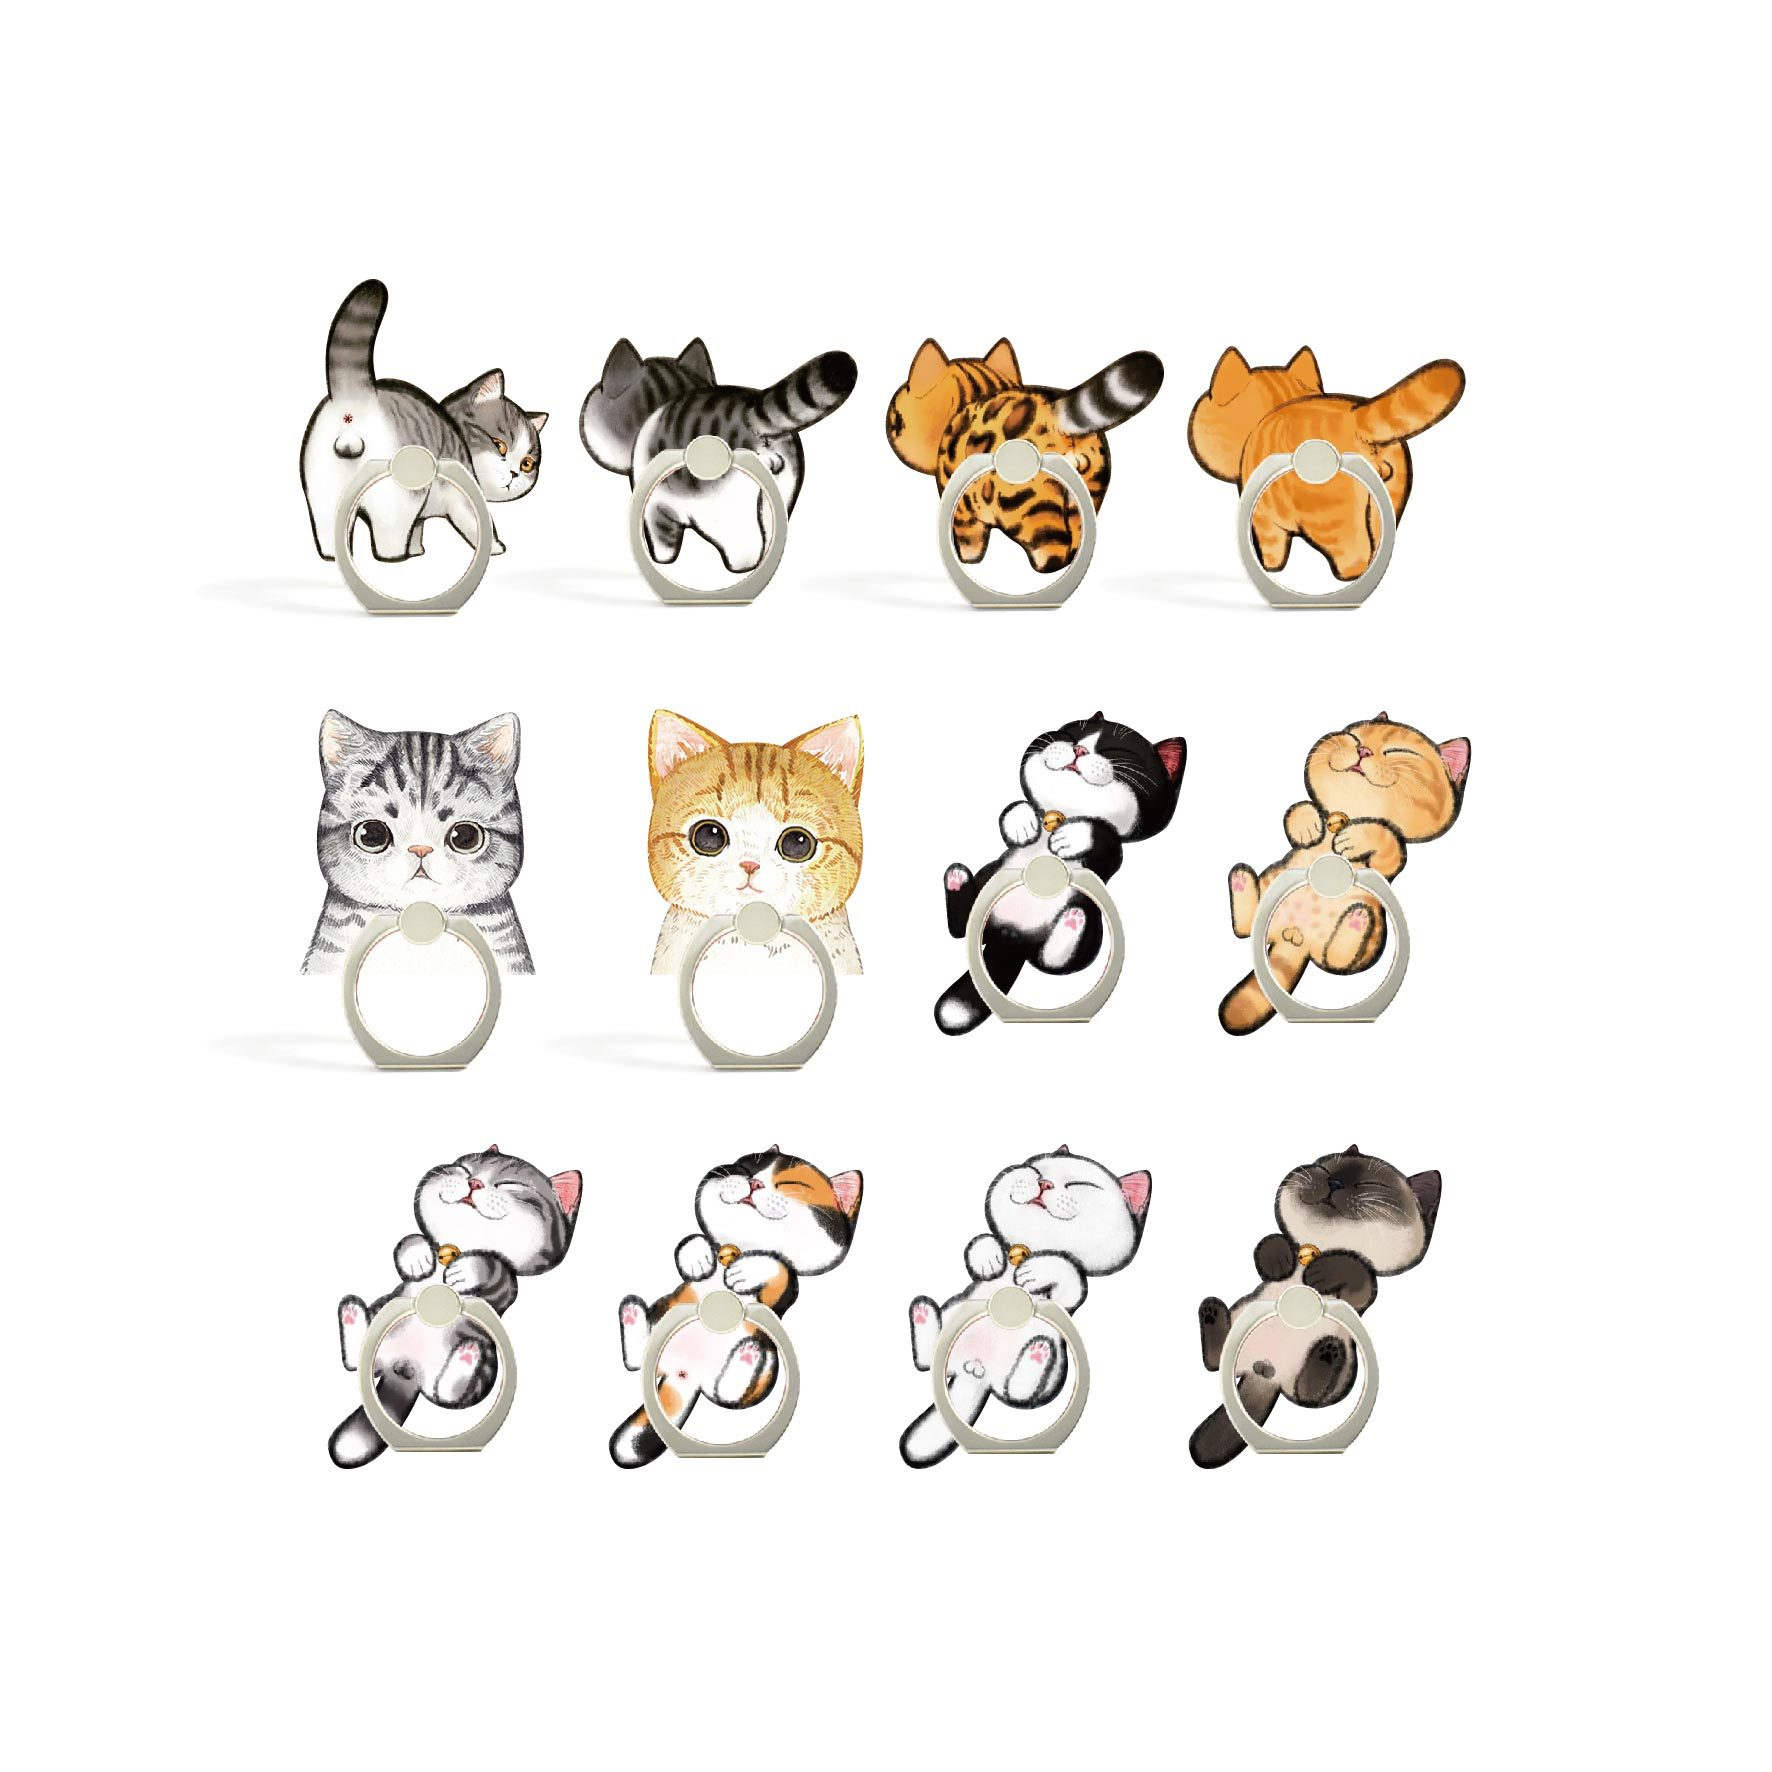 UVR 360 Degree Cartoon Cat Finger Ring Smartphone Stand Holder Mobile Phone Holder For IPhone Huawei All Phone